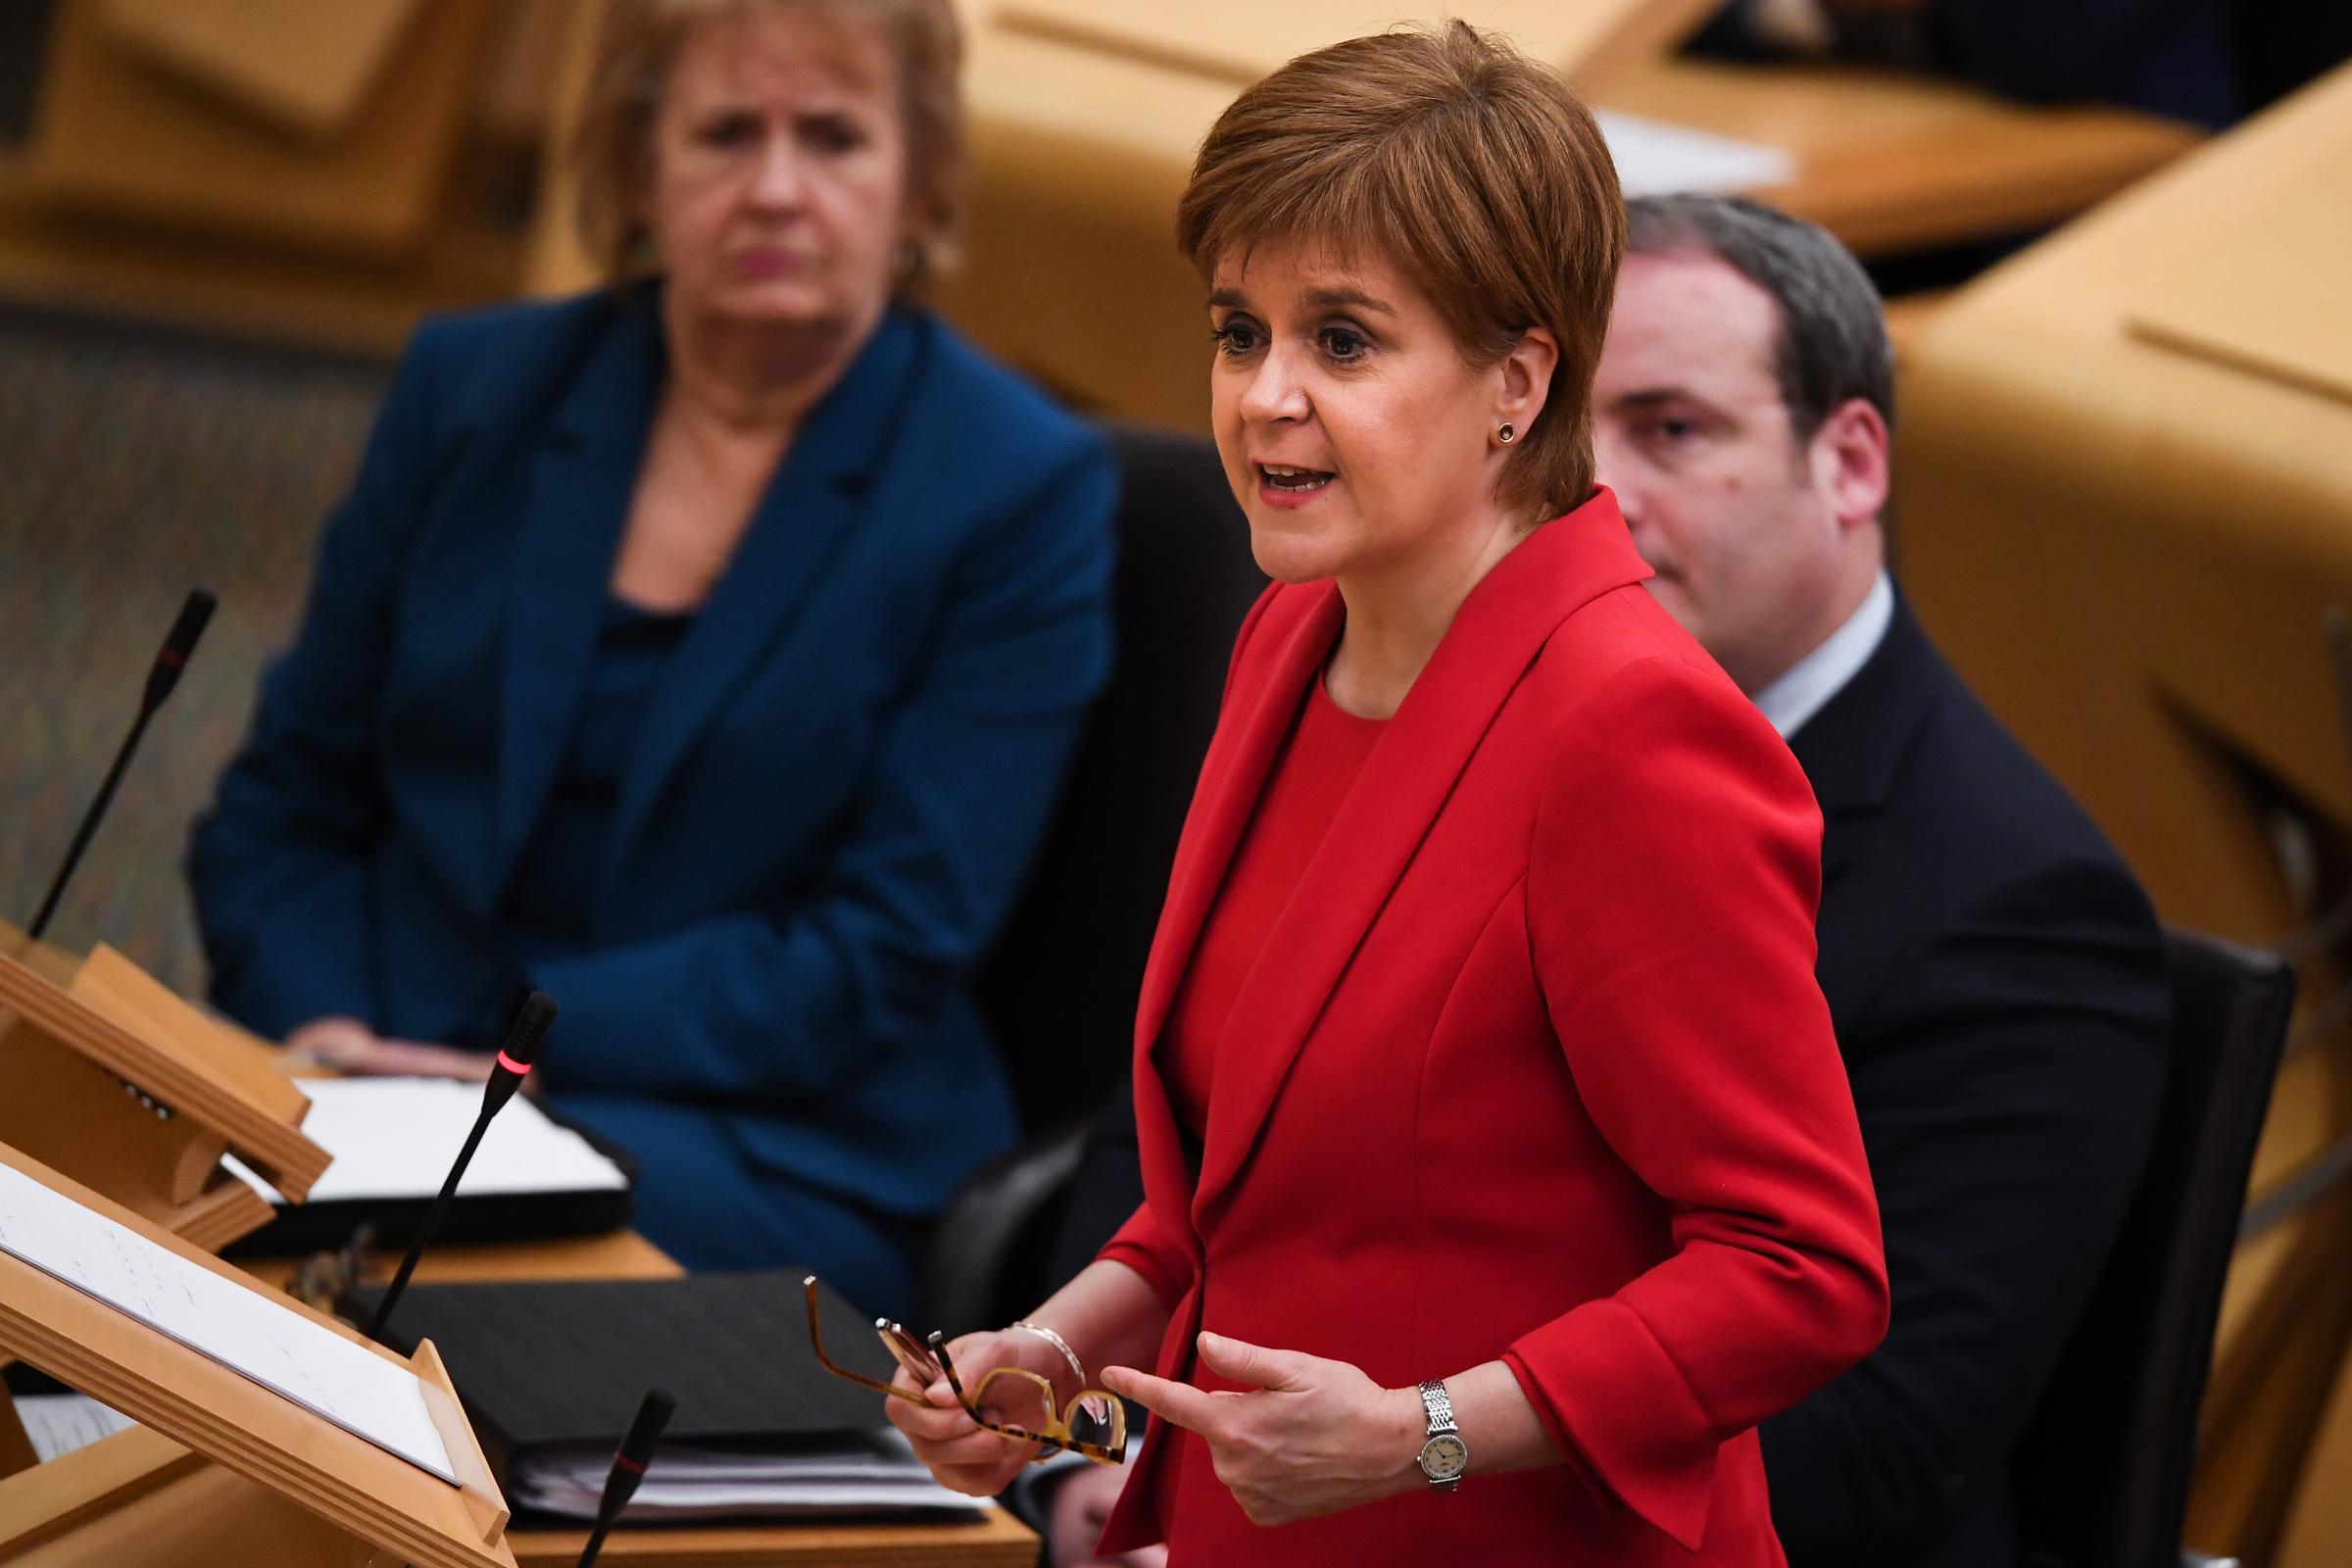 Nicola Sturgeon gives public statement on Alex Salmond charges